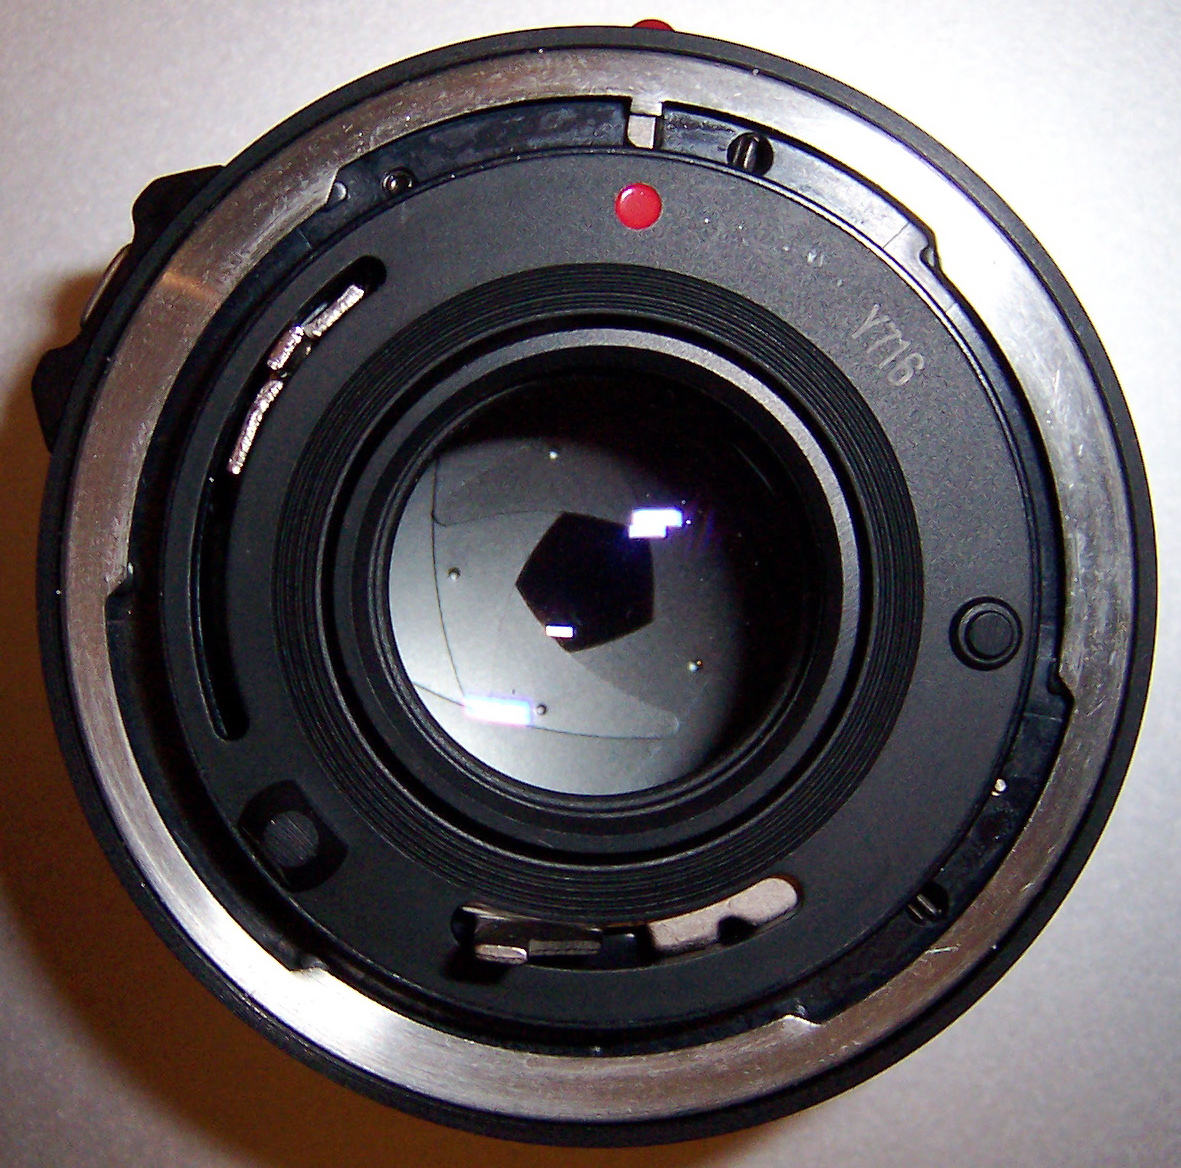 File:Canon FD lens rear.jpg - Wikipedia, the free encyclopedia